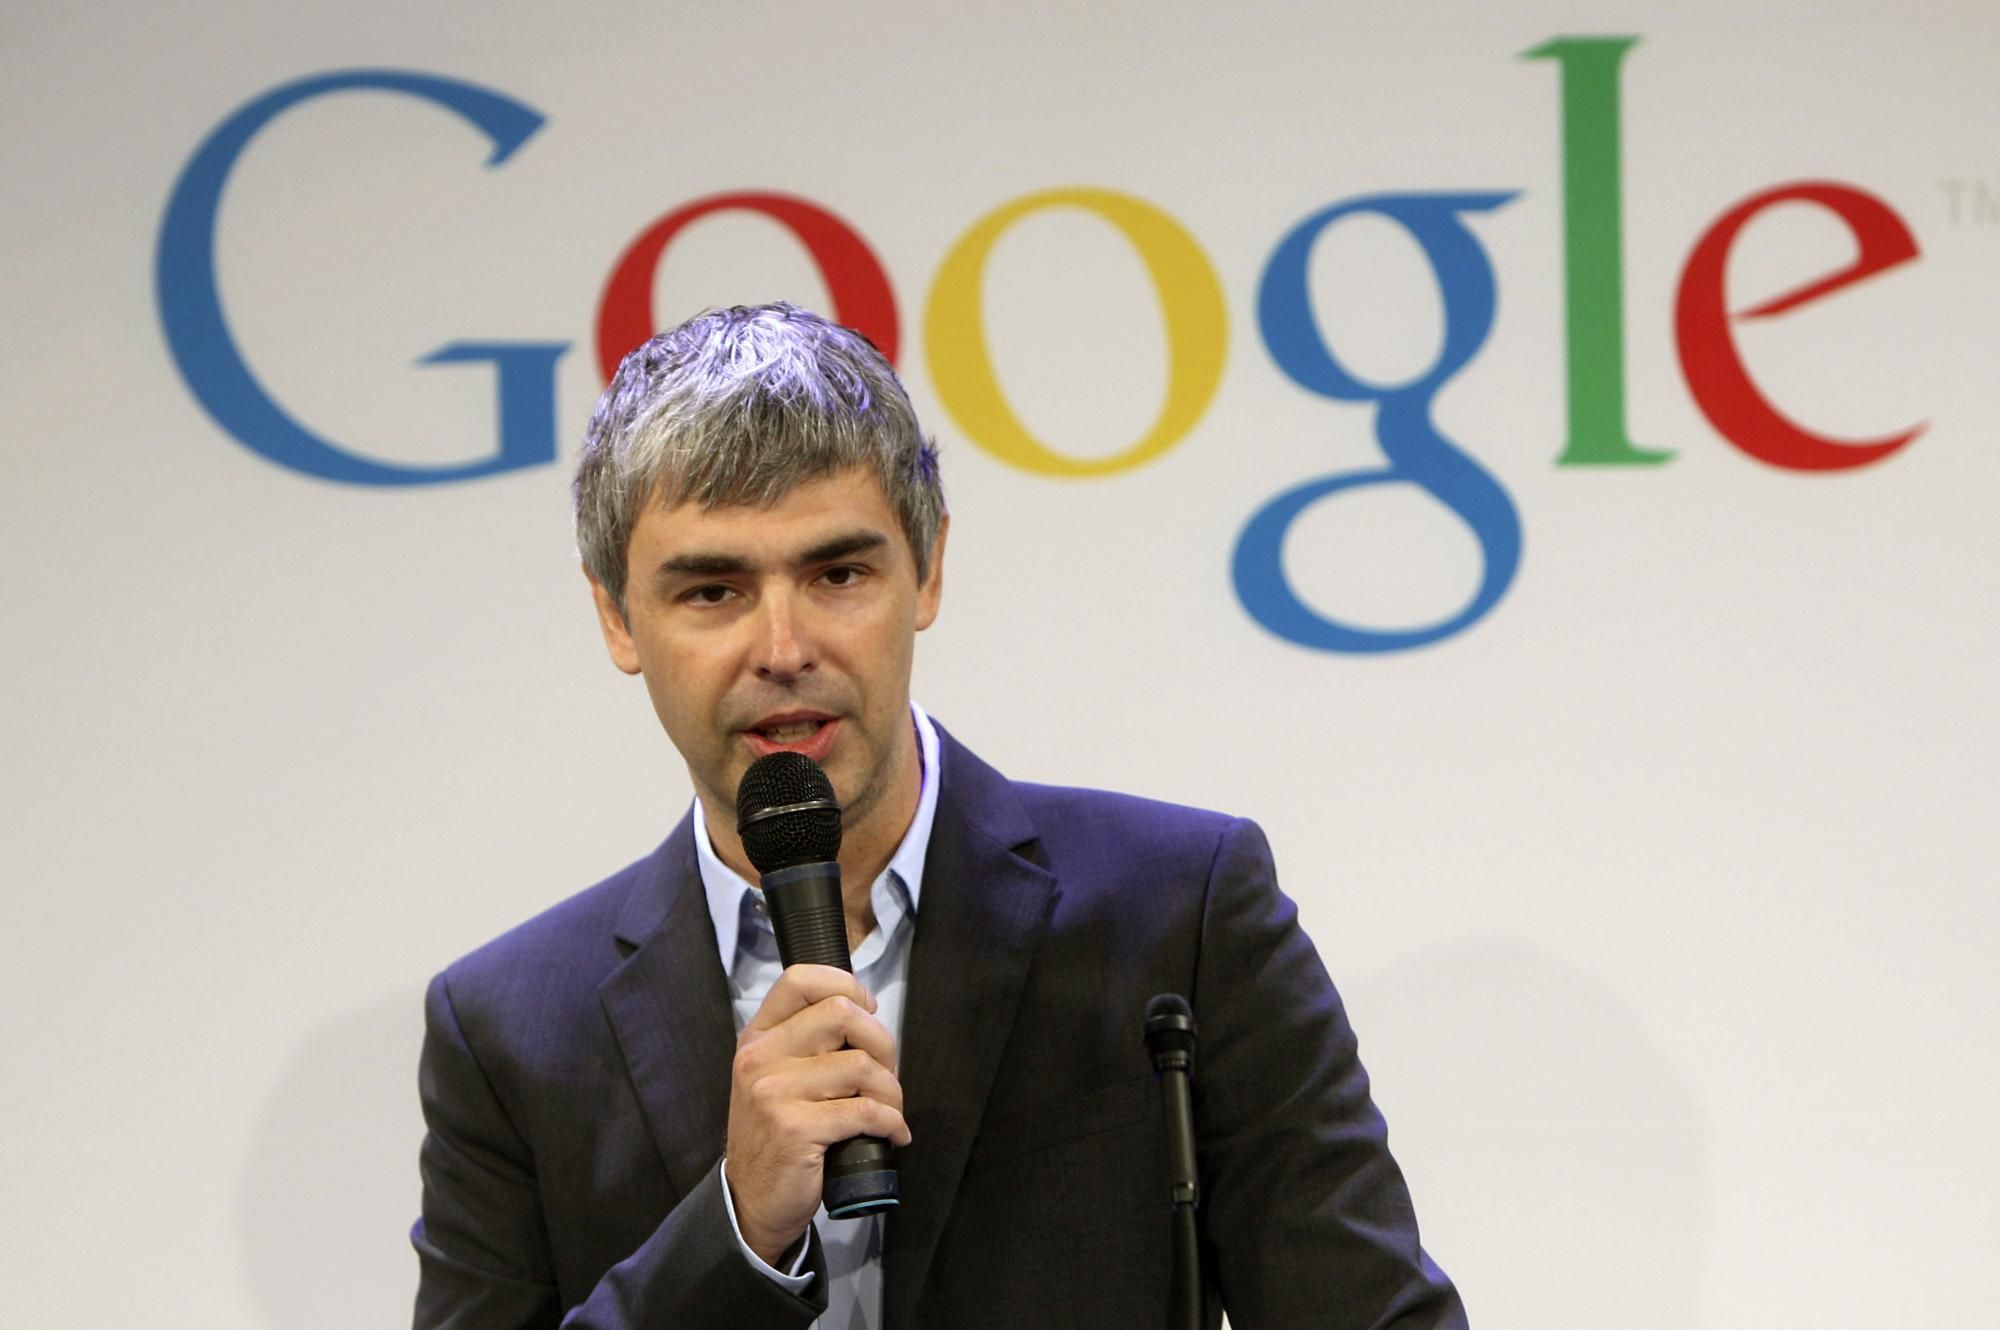 Larry Page Wallpapers - Top Free Larry Page Backgrounds - WallpaperAccess